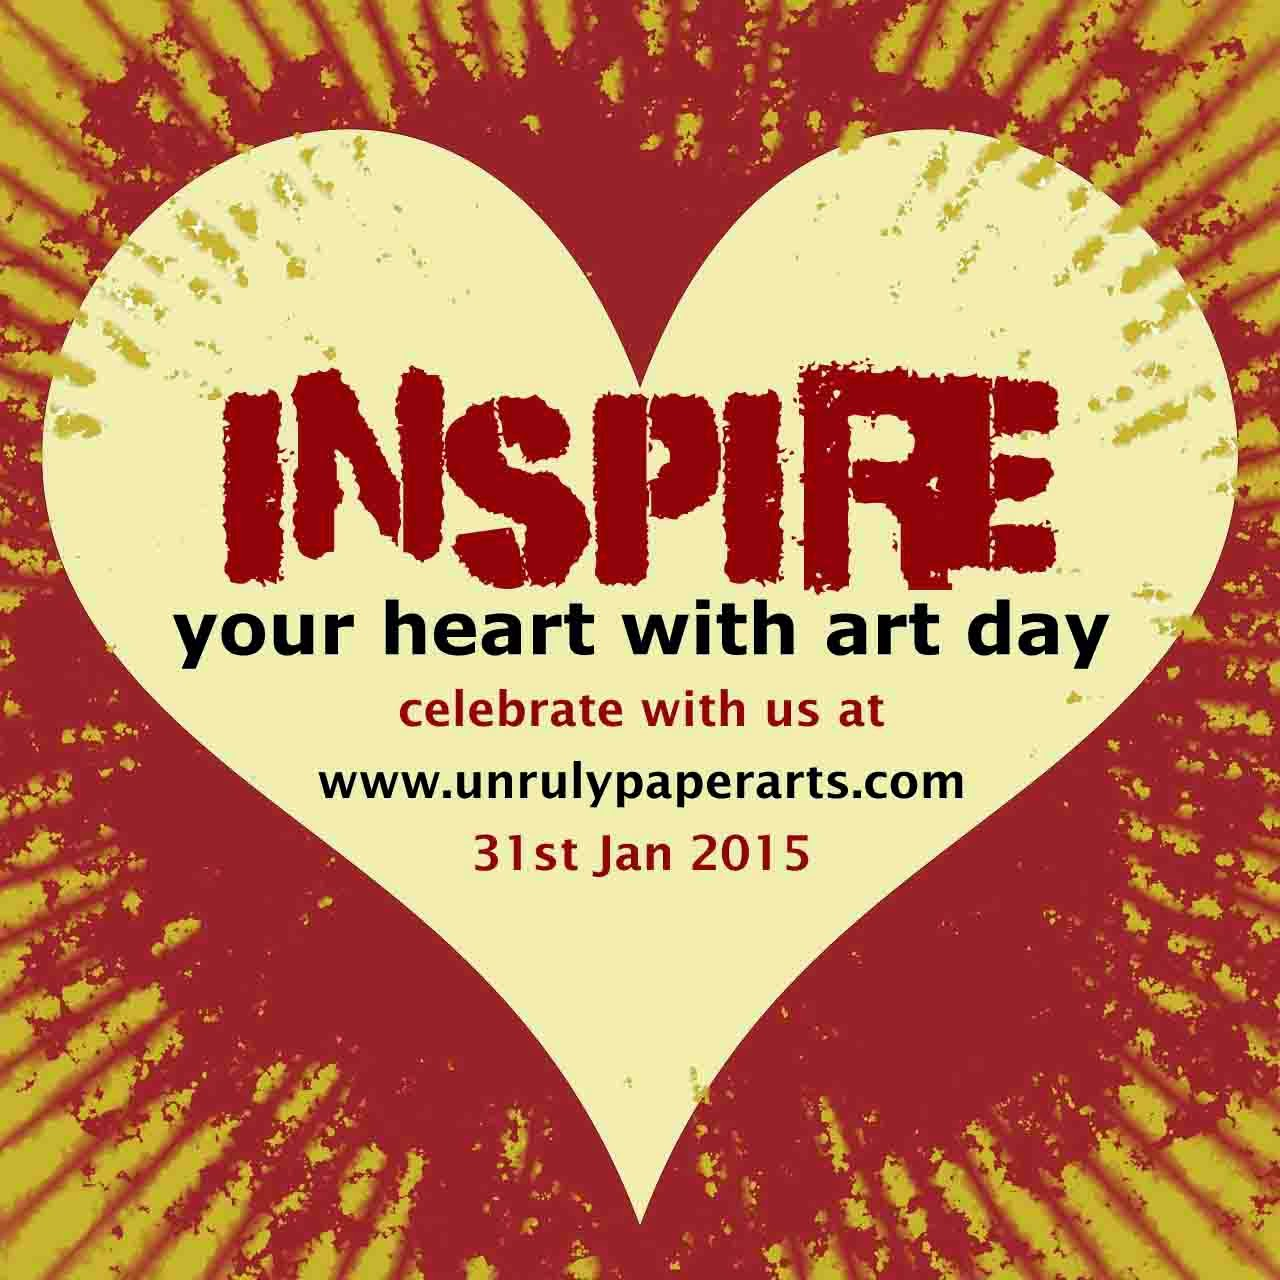 http://www.unrulypaperarts.com/2015/01/inspire-your-heart-with-art-day.html